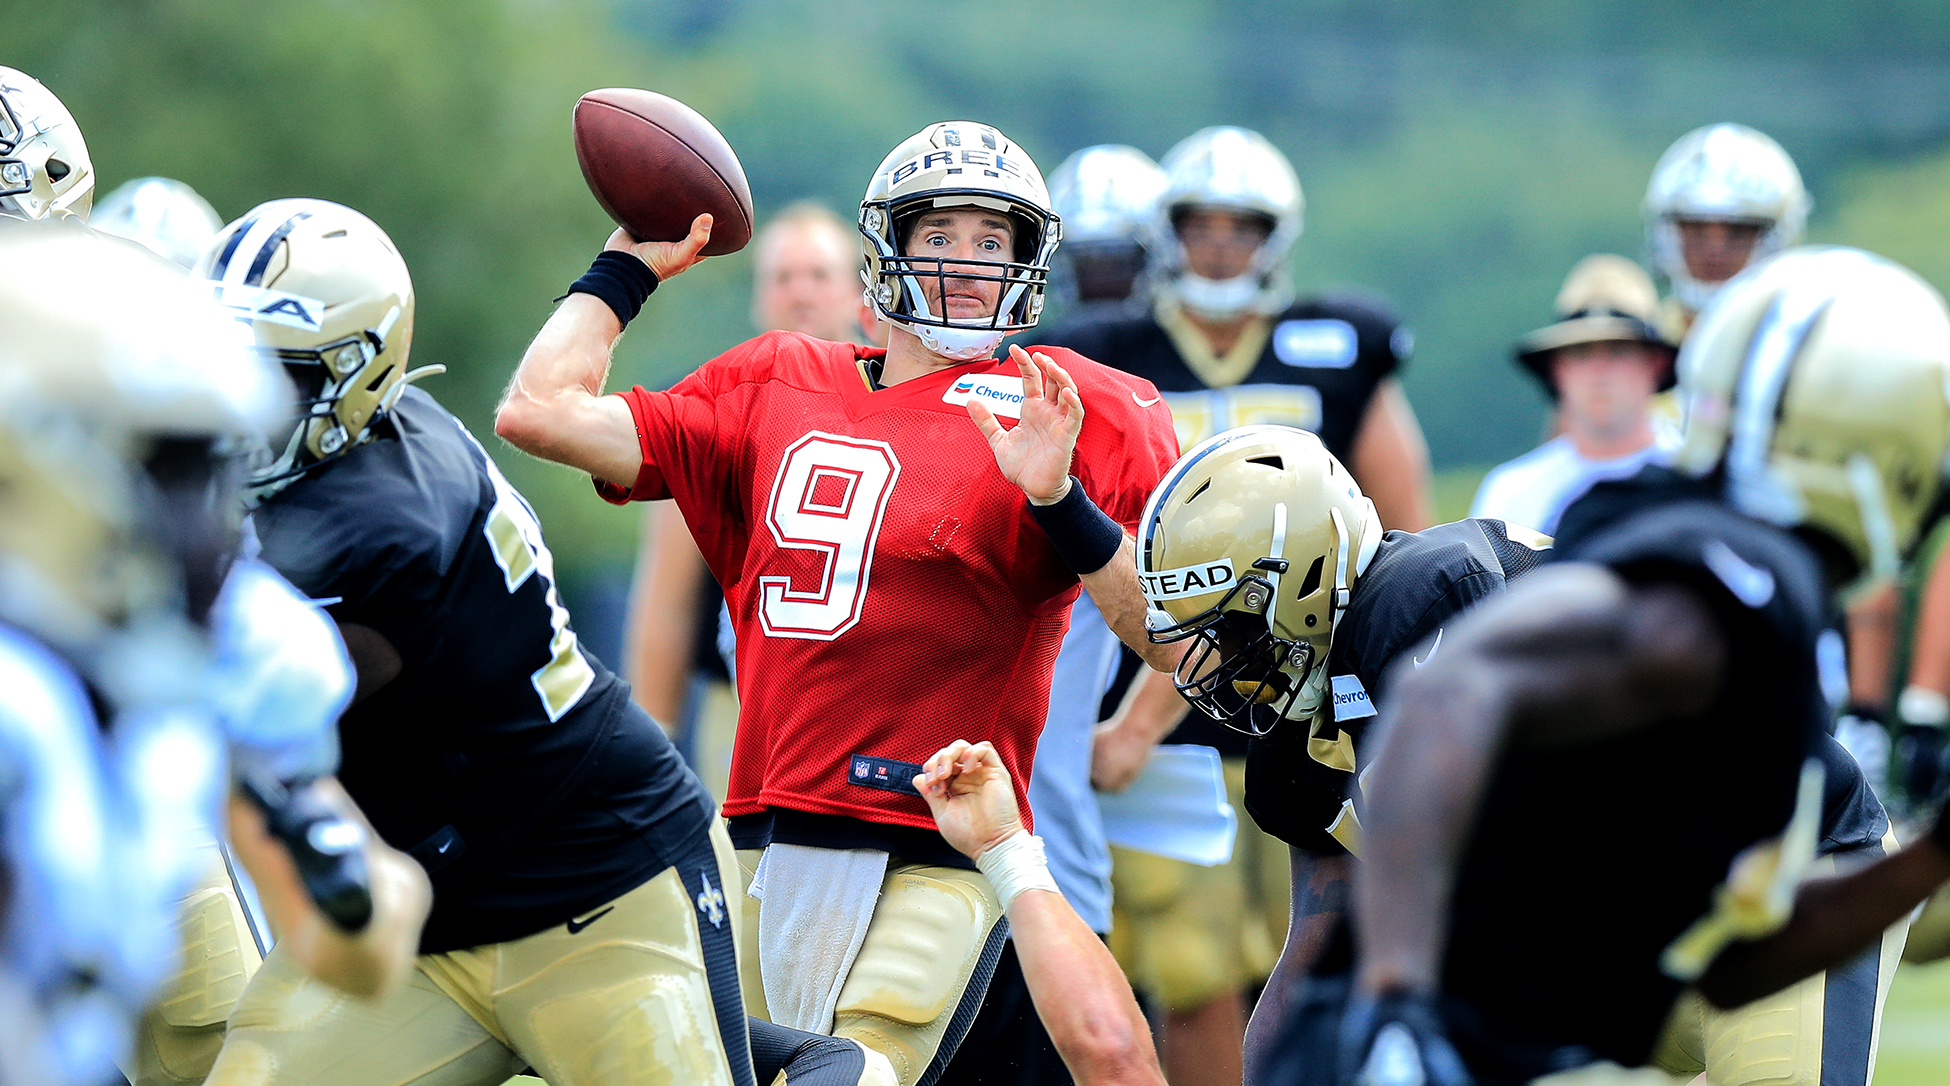 Drew Brees at New Orleans Saints training camp.